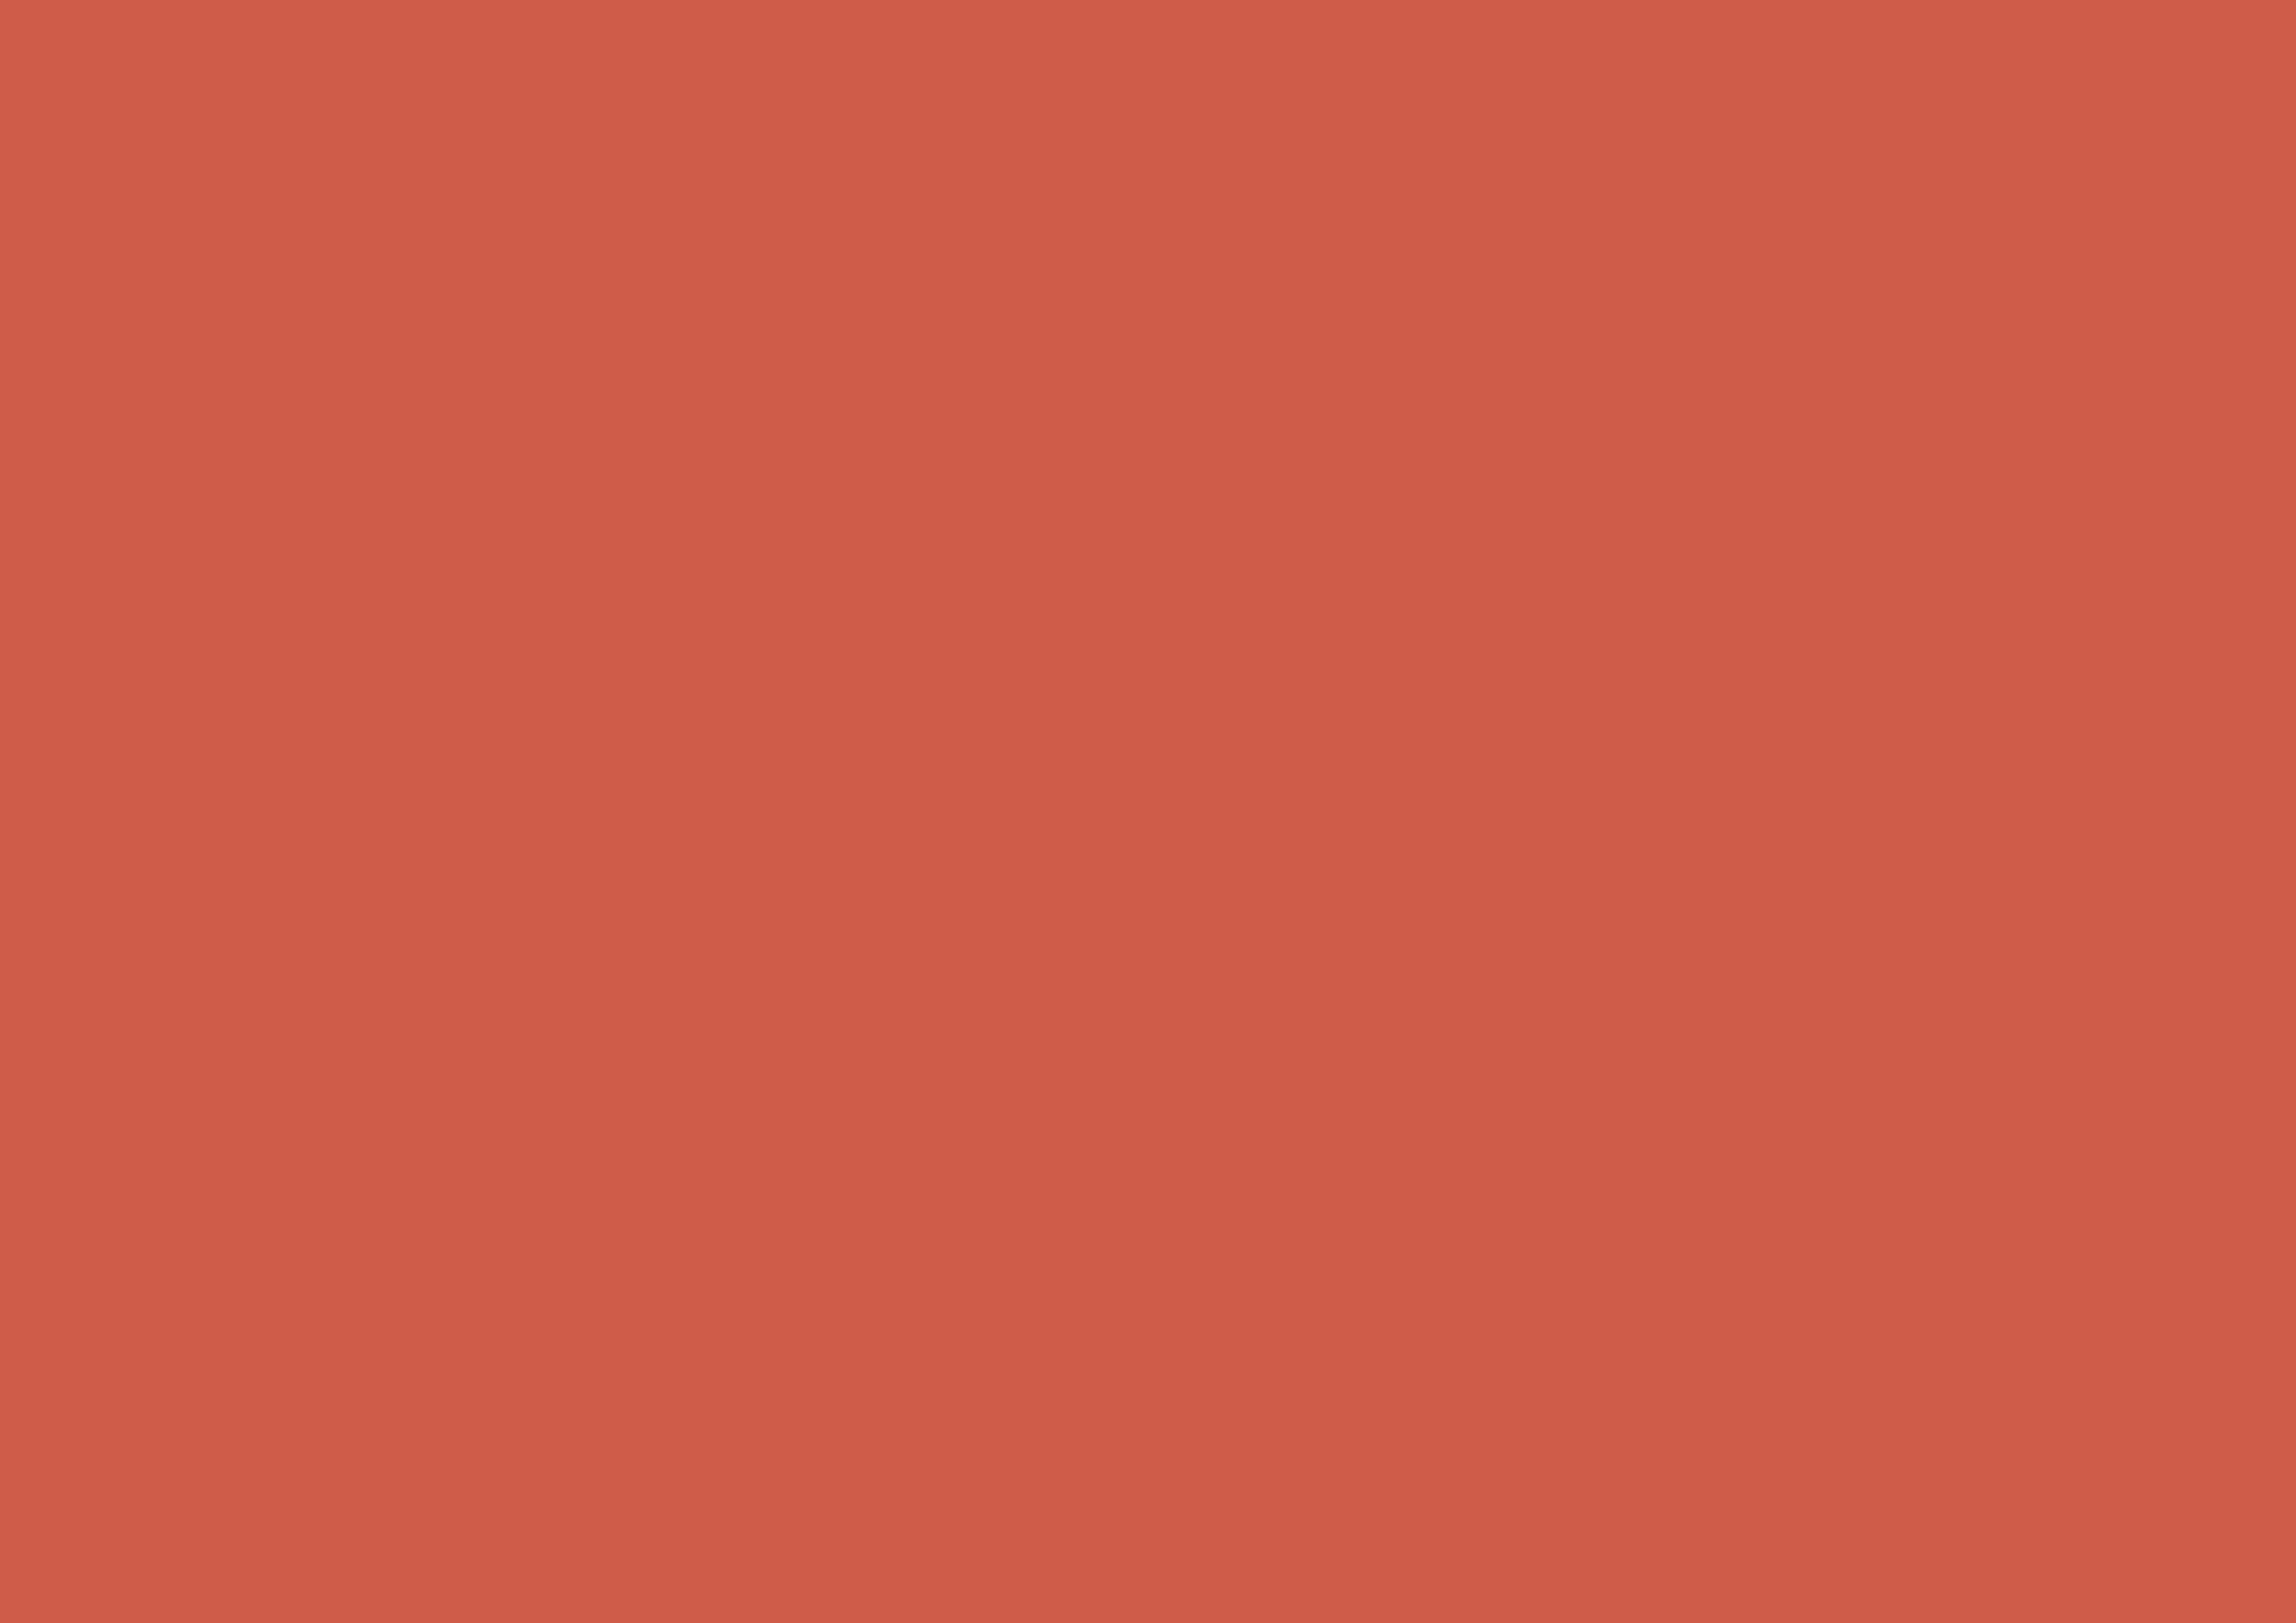 3508x2480 Dark Coral Solid Color Background